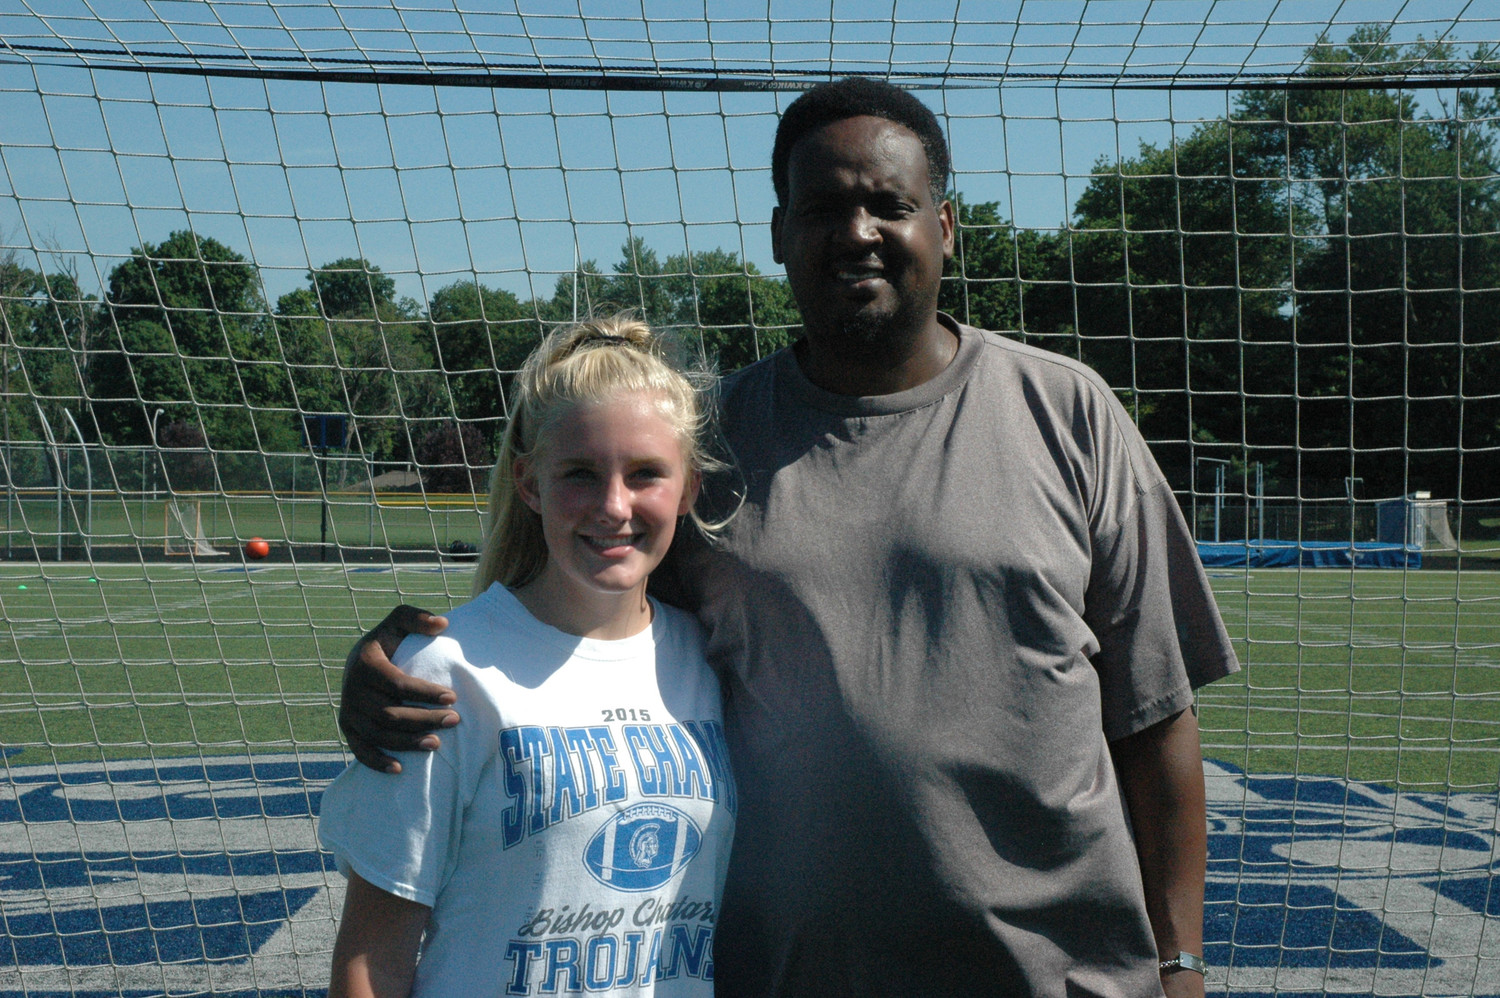 Kizito Kalima, right, a survivor of the 1994 genocide in Rwanda, poses for a photo with 16-year-old Olivia Julian June 29 at Bishop Chatard High School in Indianapolis, where he held a soccer clinic for youths born in the refugee camps of that African country.